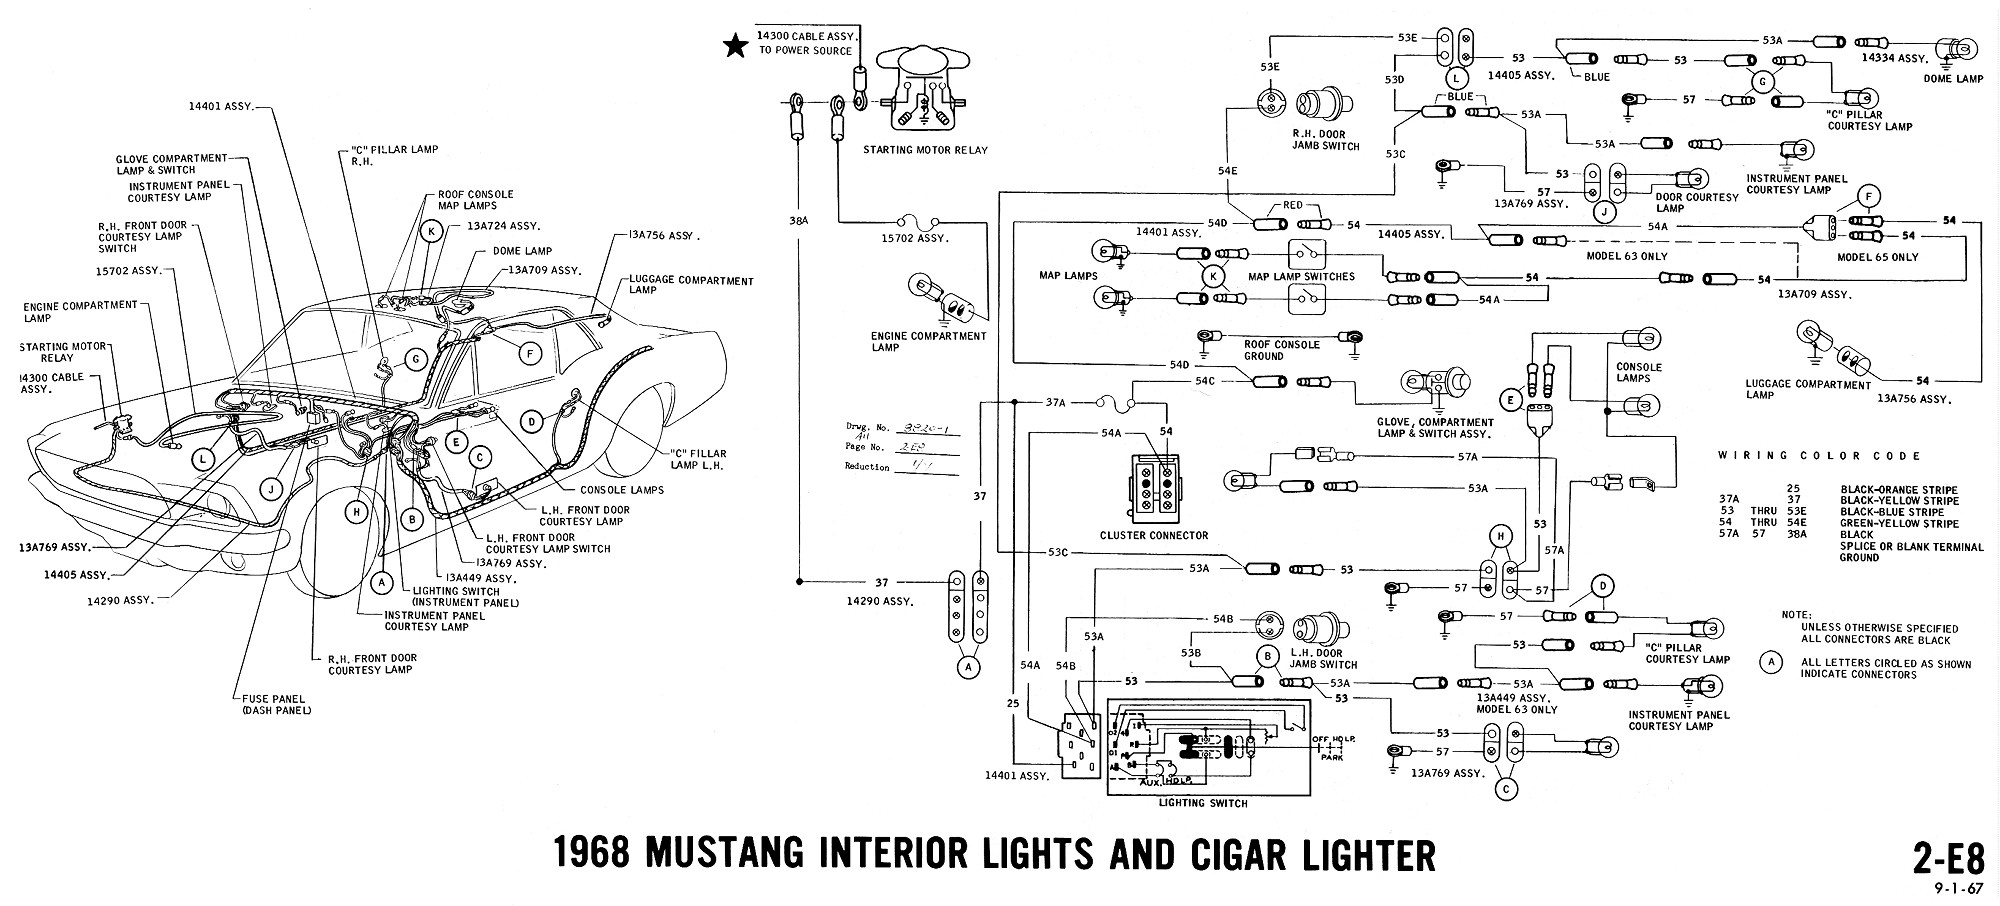 1968 mustang wiring diagram example electrical wiring diagram u2022 rh cranejapan co